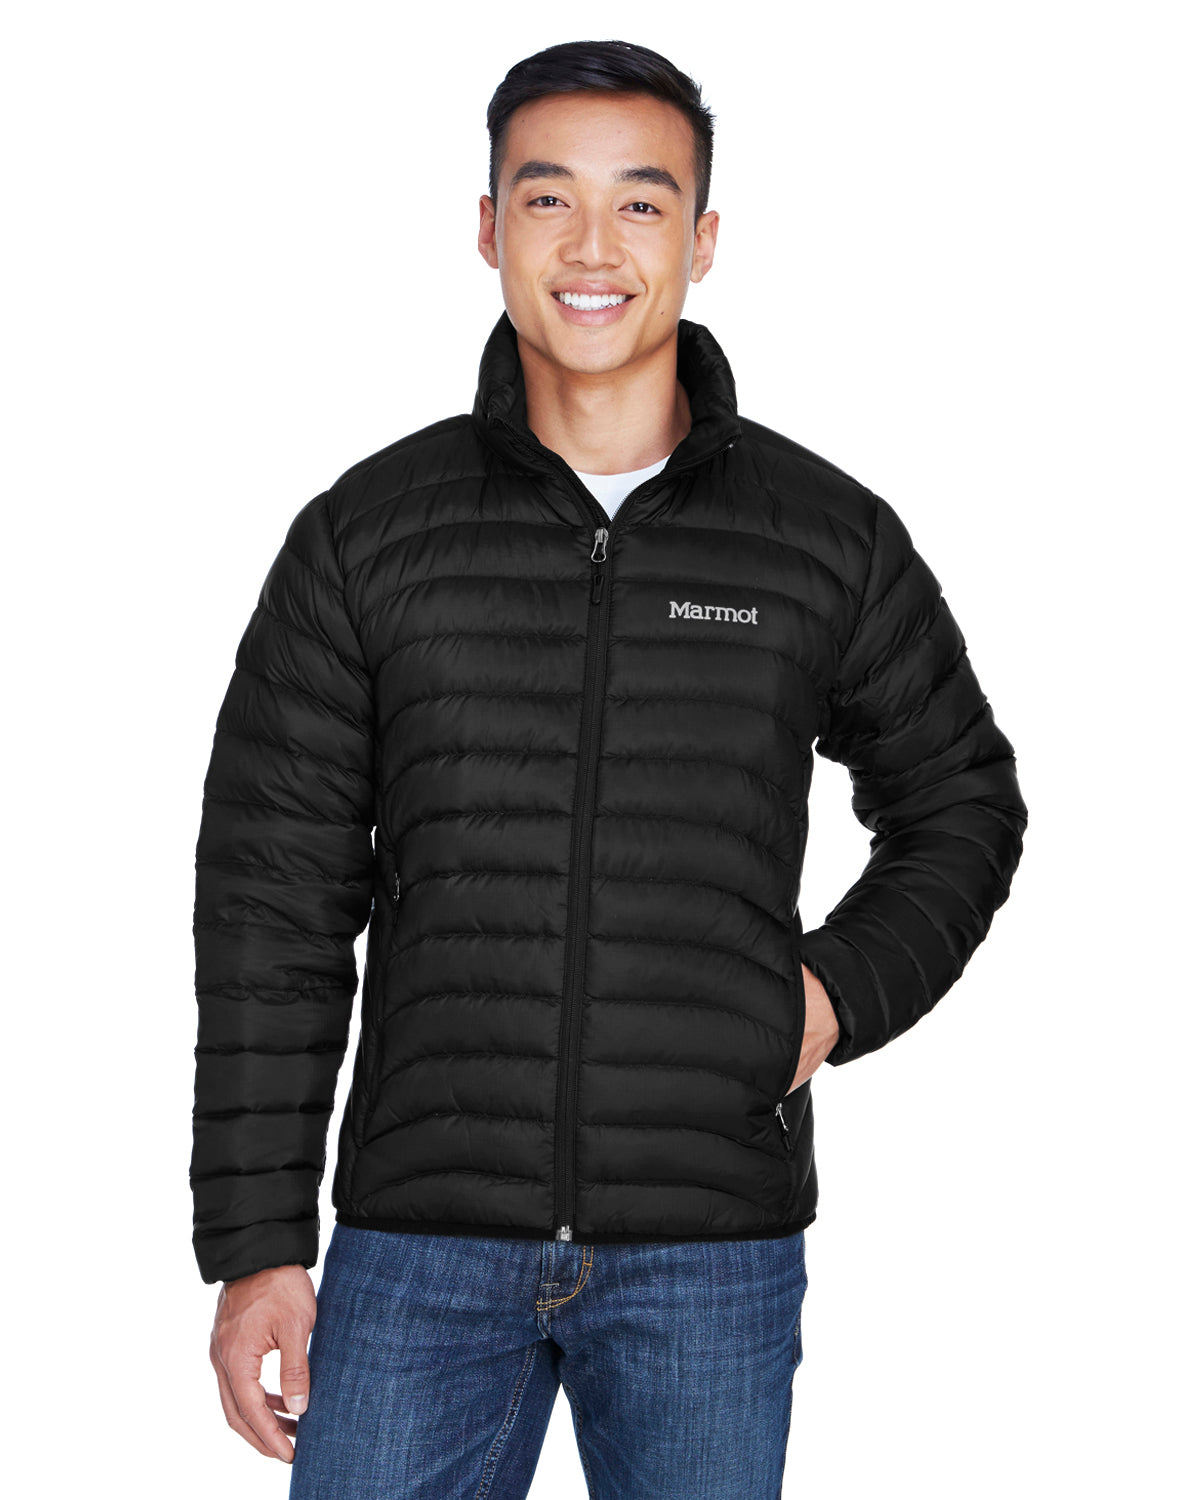 MARMOT® MEN'S TULLUS JACKET